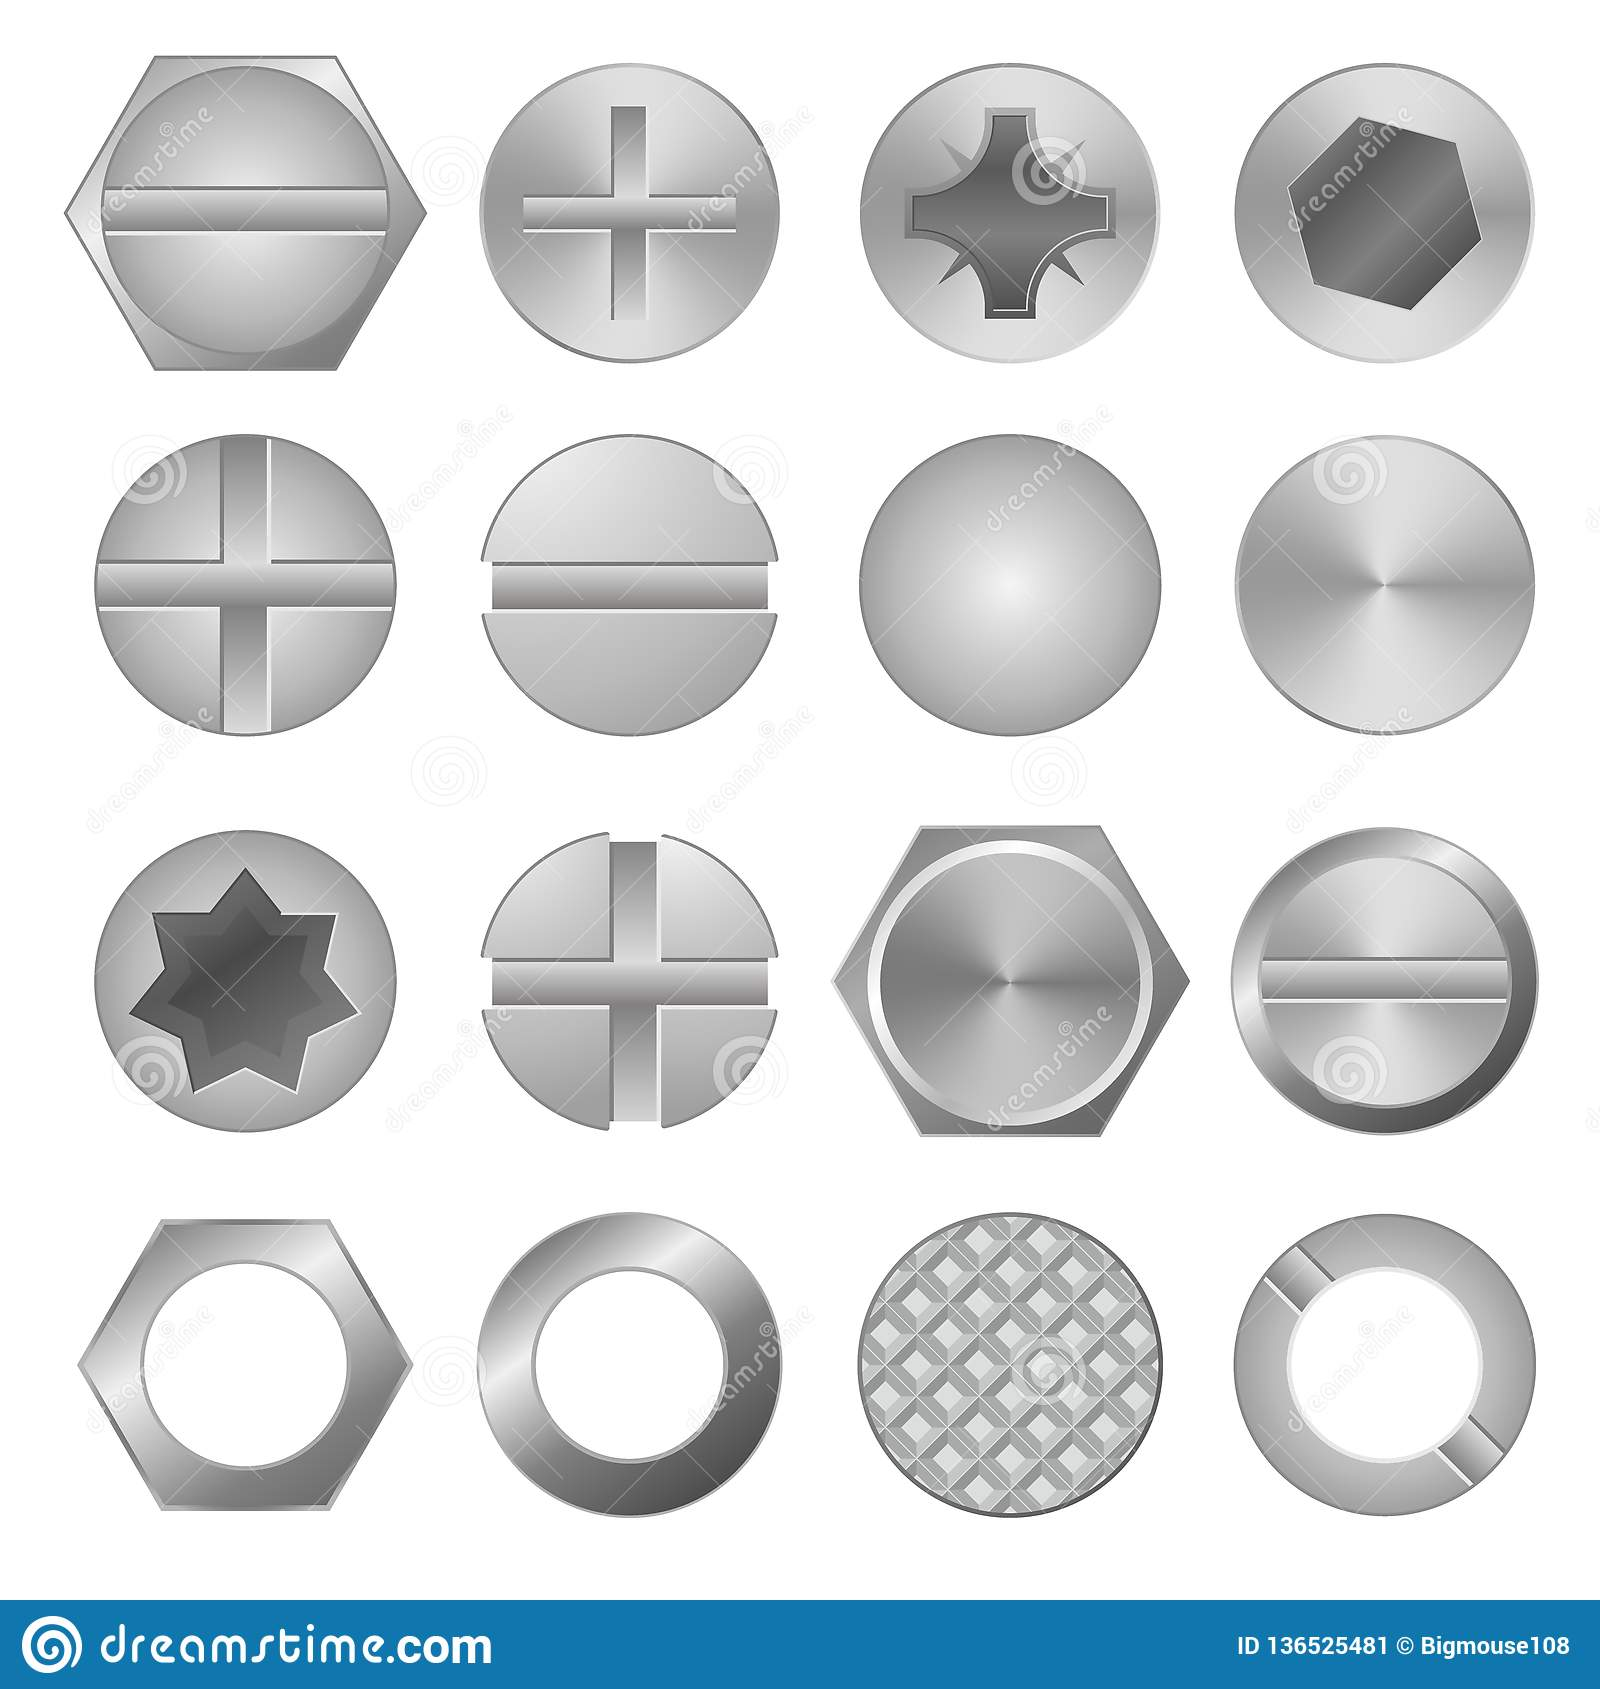 Realistic 3d Detailed Metal Screws and Heads Set. Vector